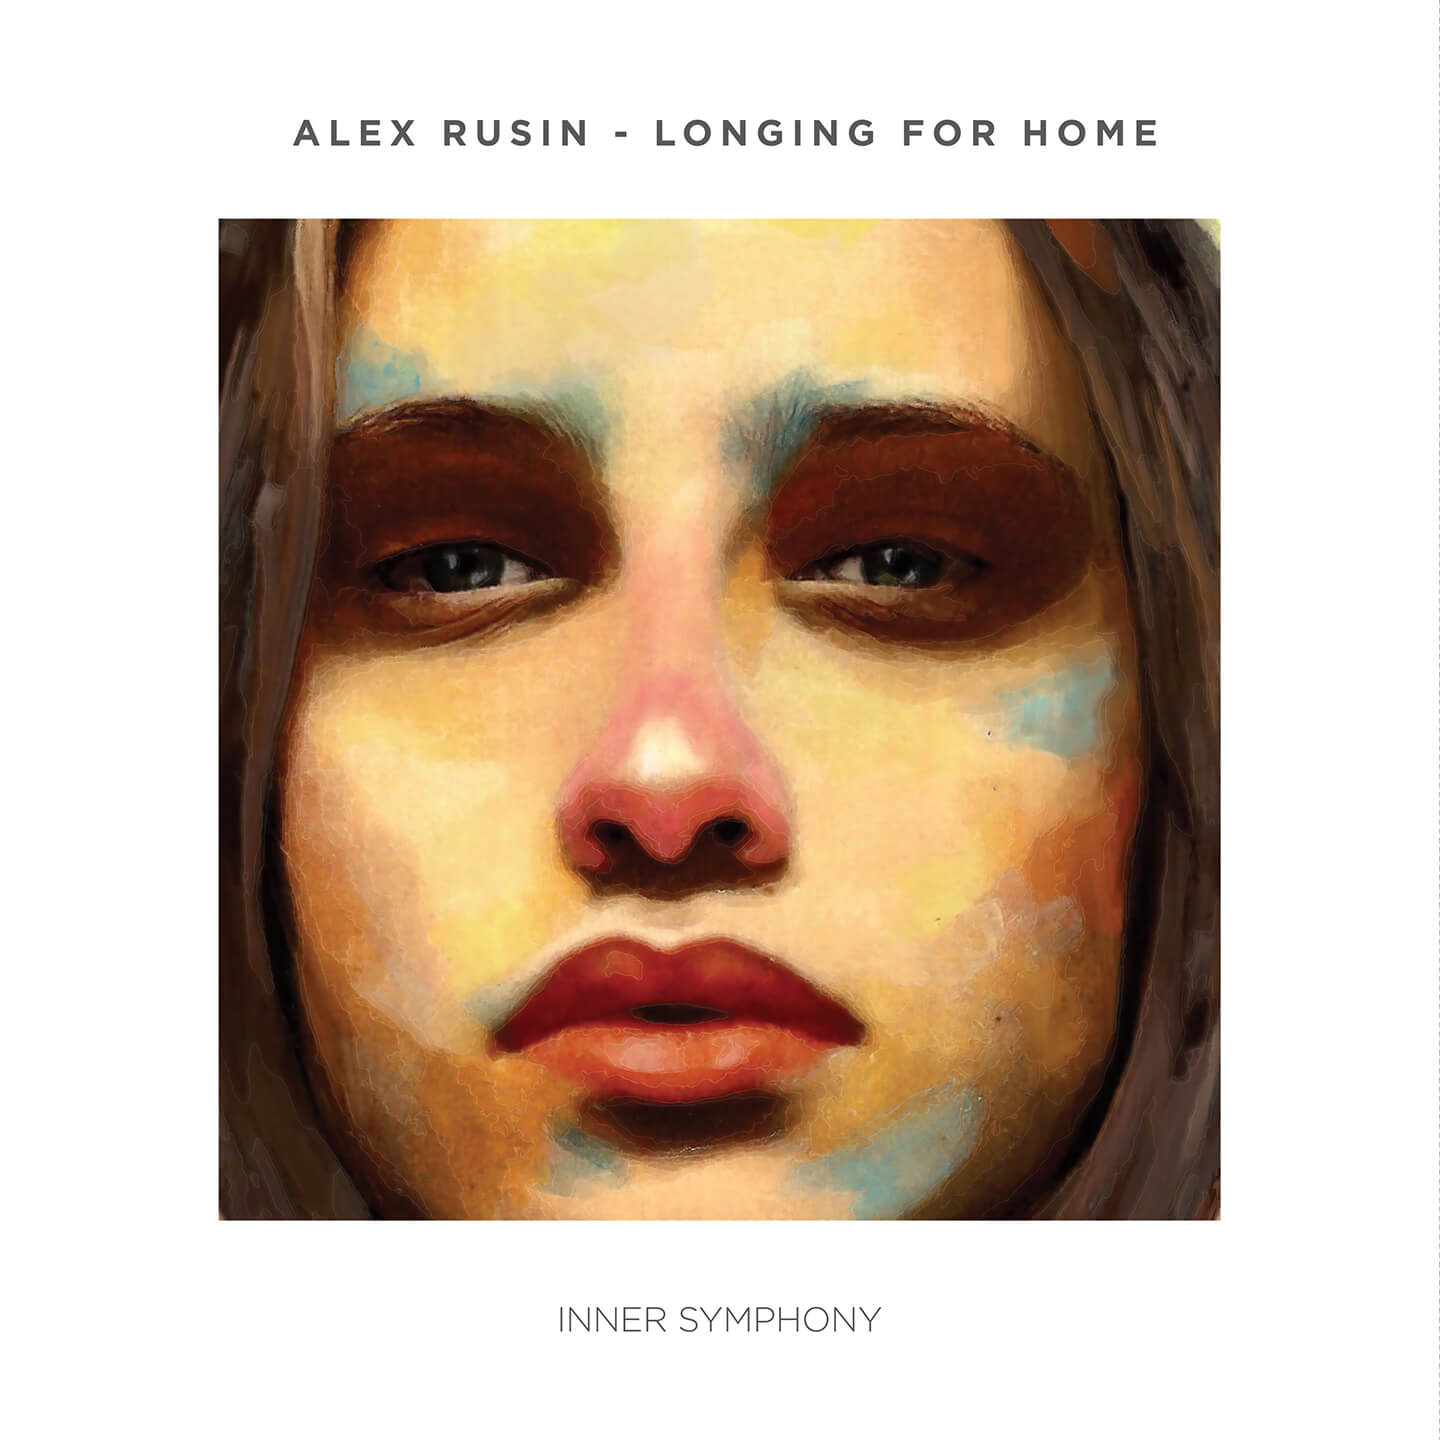 IS019 Alex Rusin Longing For Home - Inner Symphony